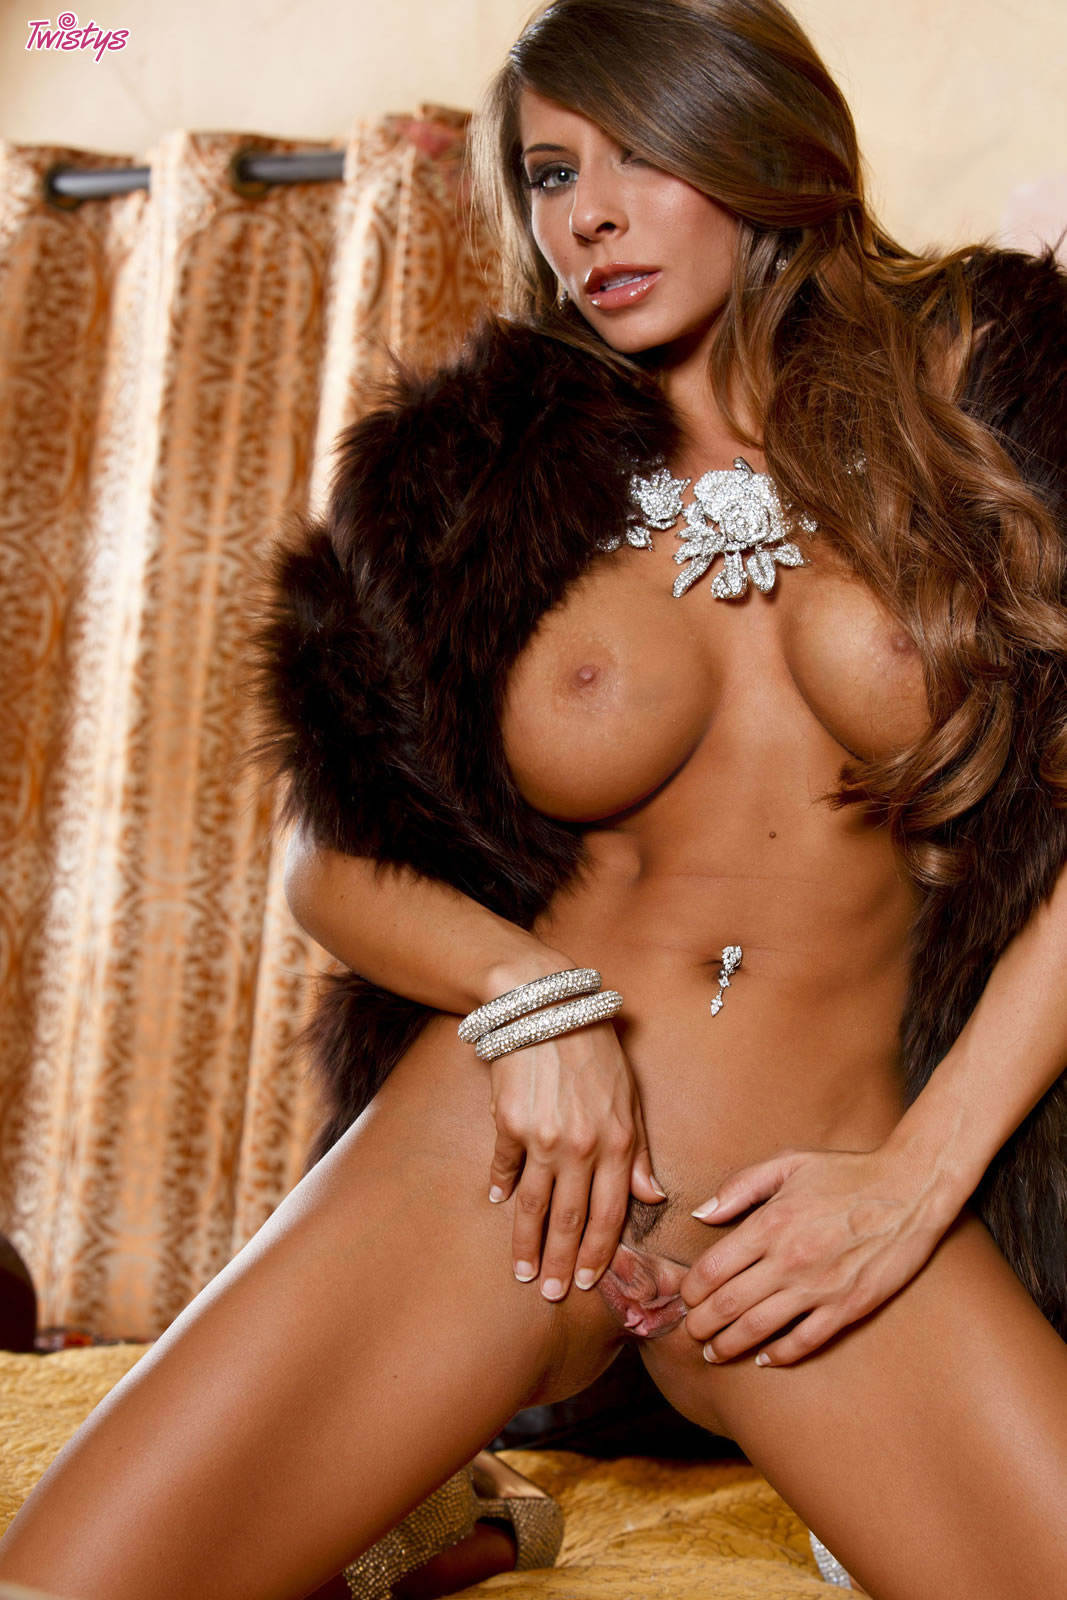 madison ivy twistys